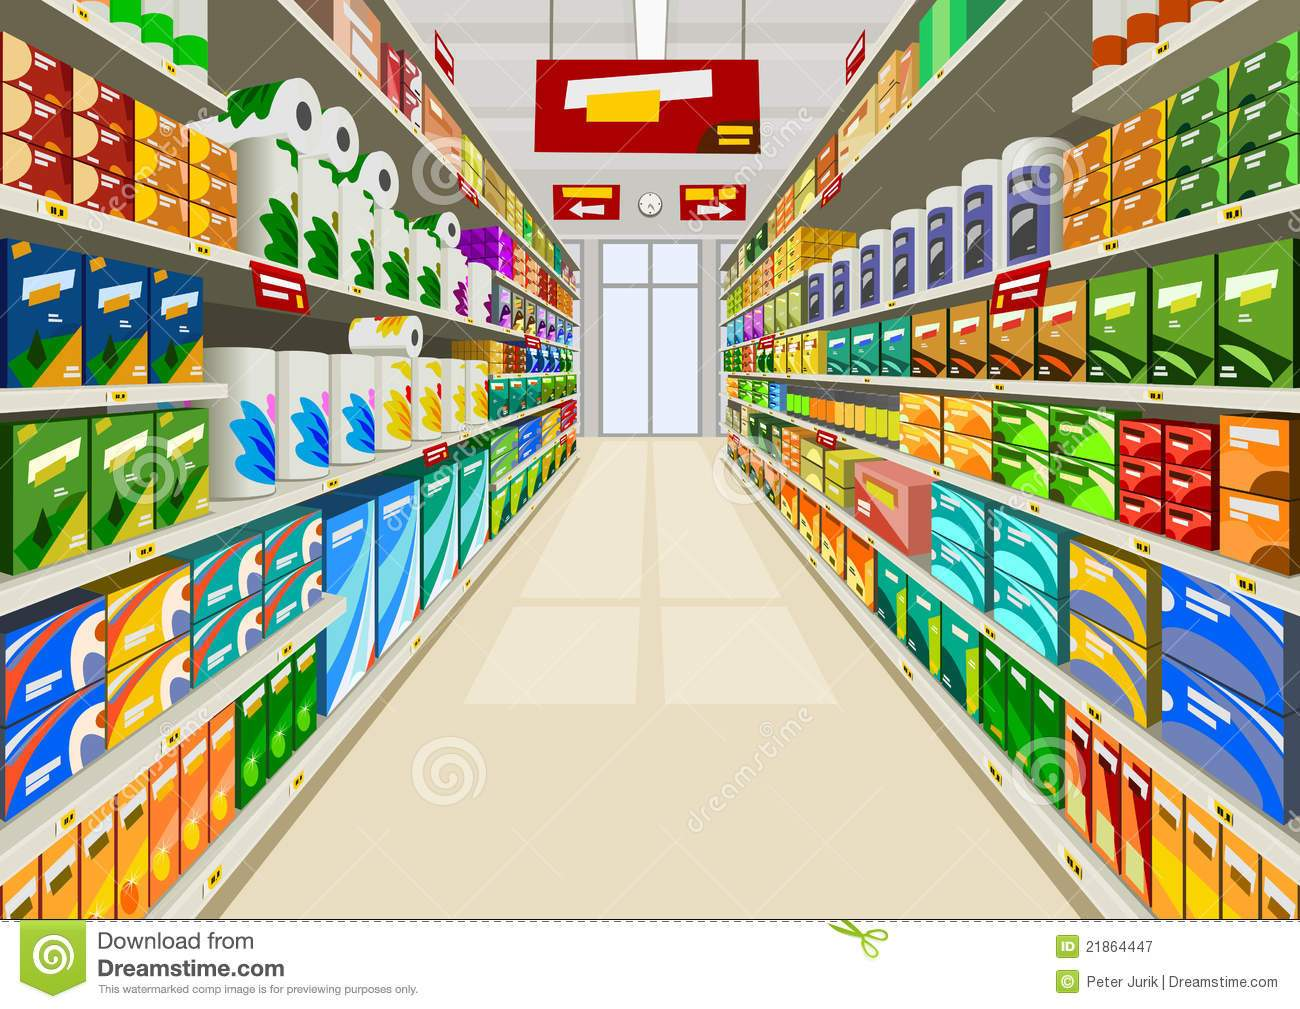 Free grocery store clipart 5 » Clipart Portal.